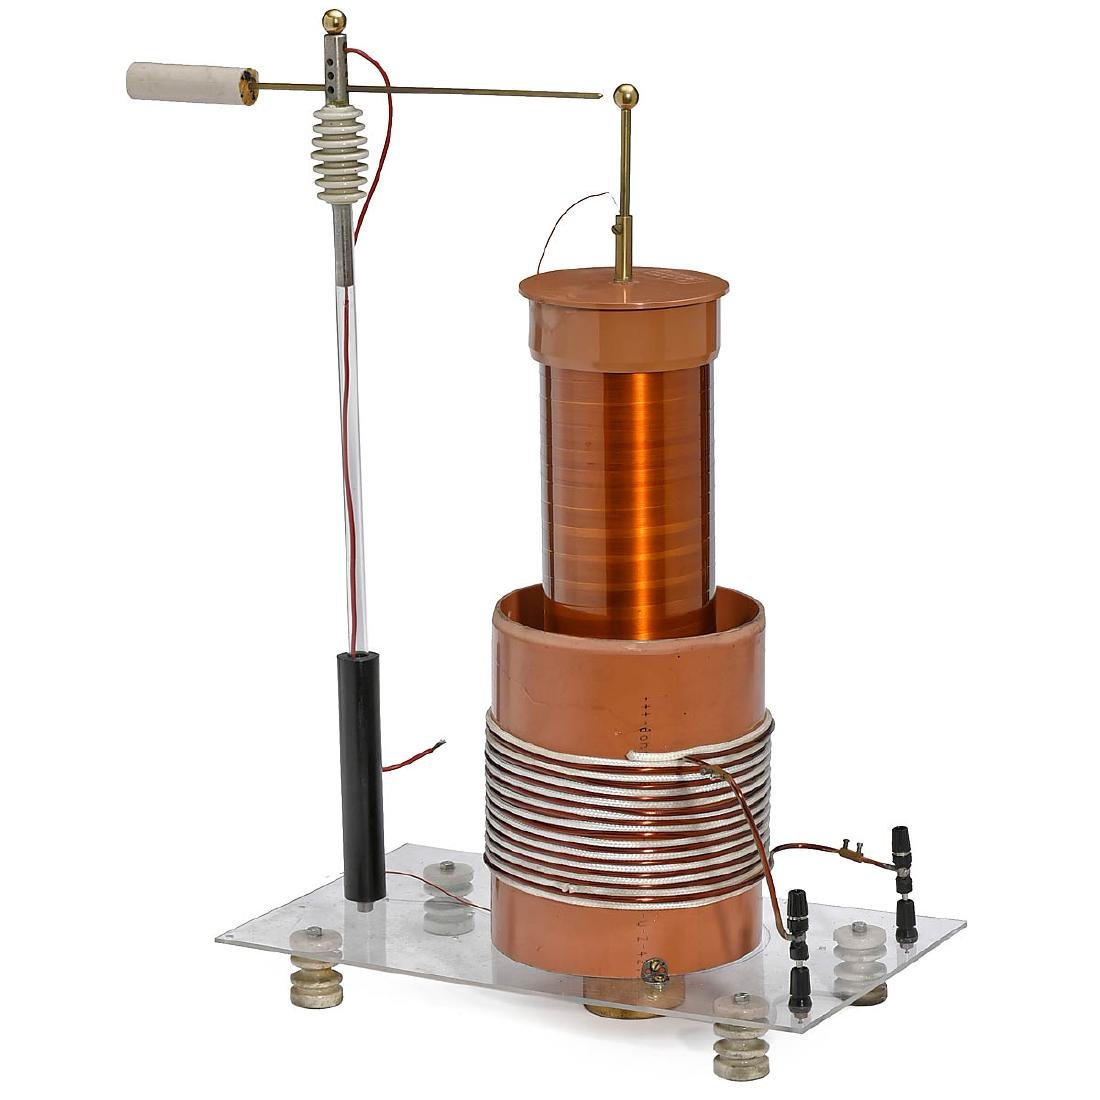 High-Voltage Apparatus after Tesla, c. 1980